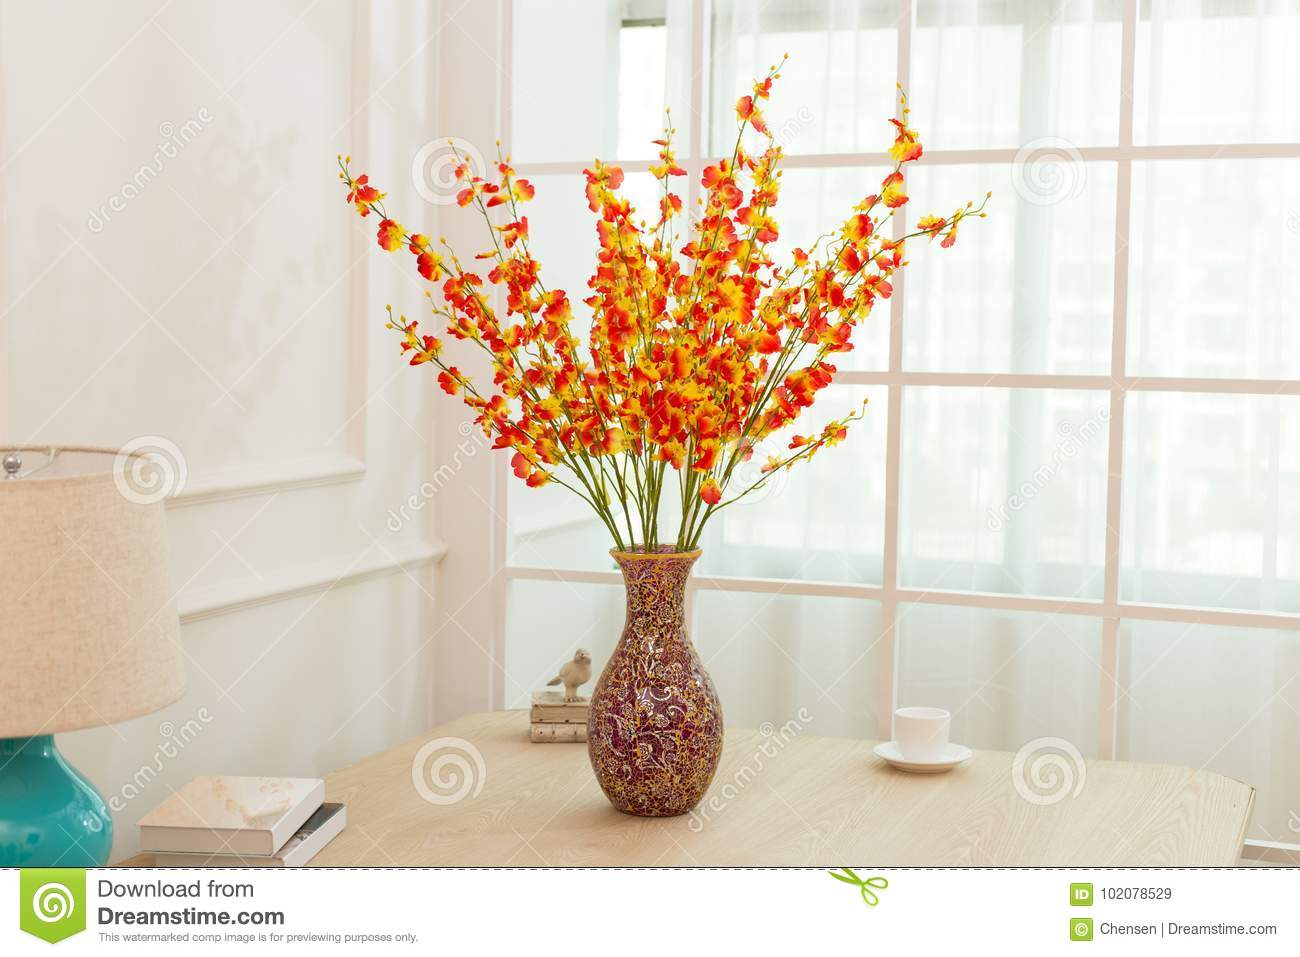 Flower Arrangement On Table Office Desk Stock Image Image Of Bottle Brides 102078529